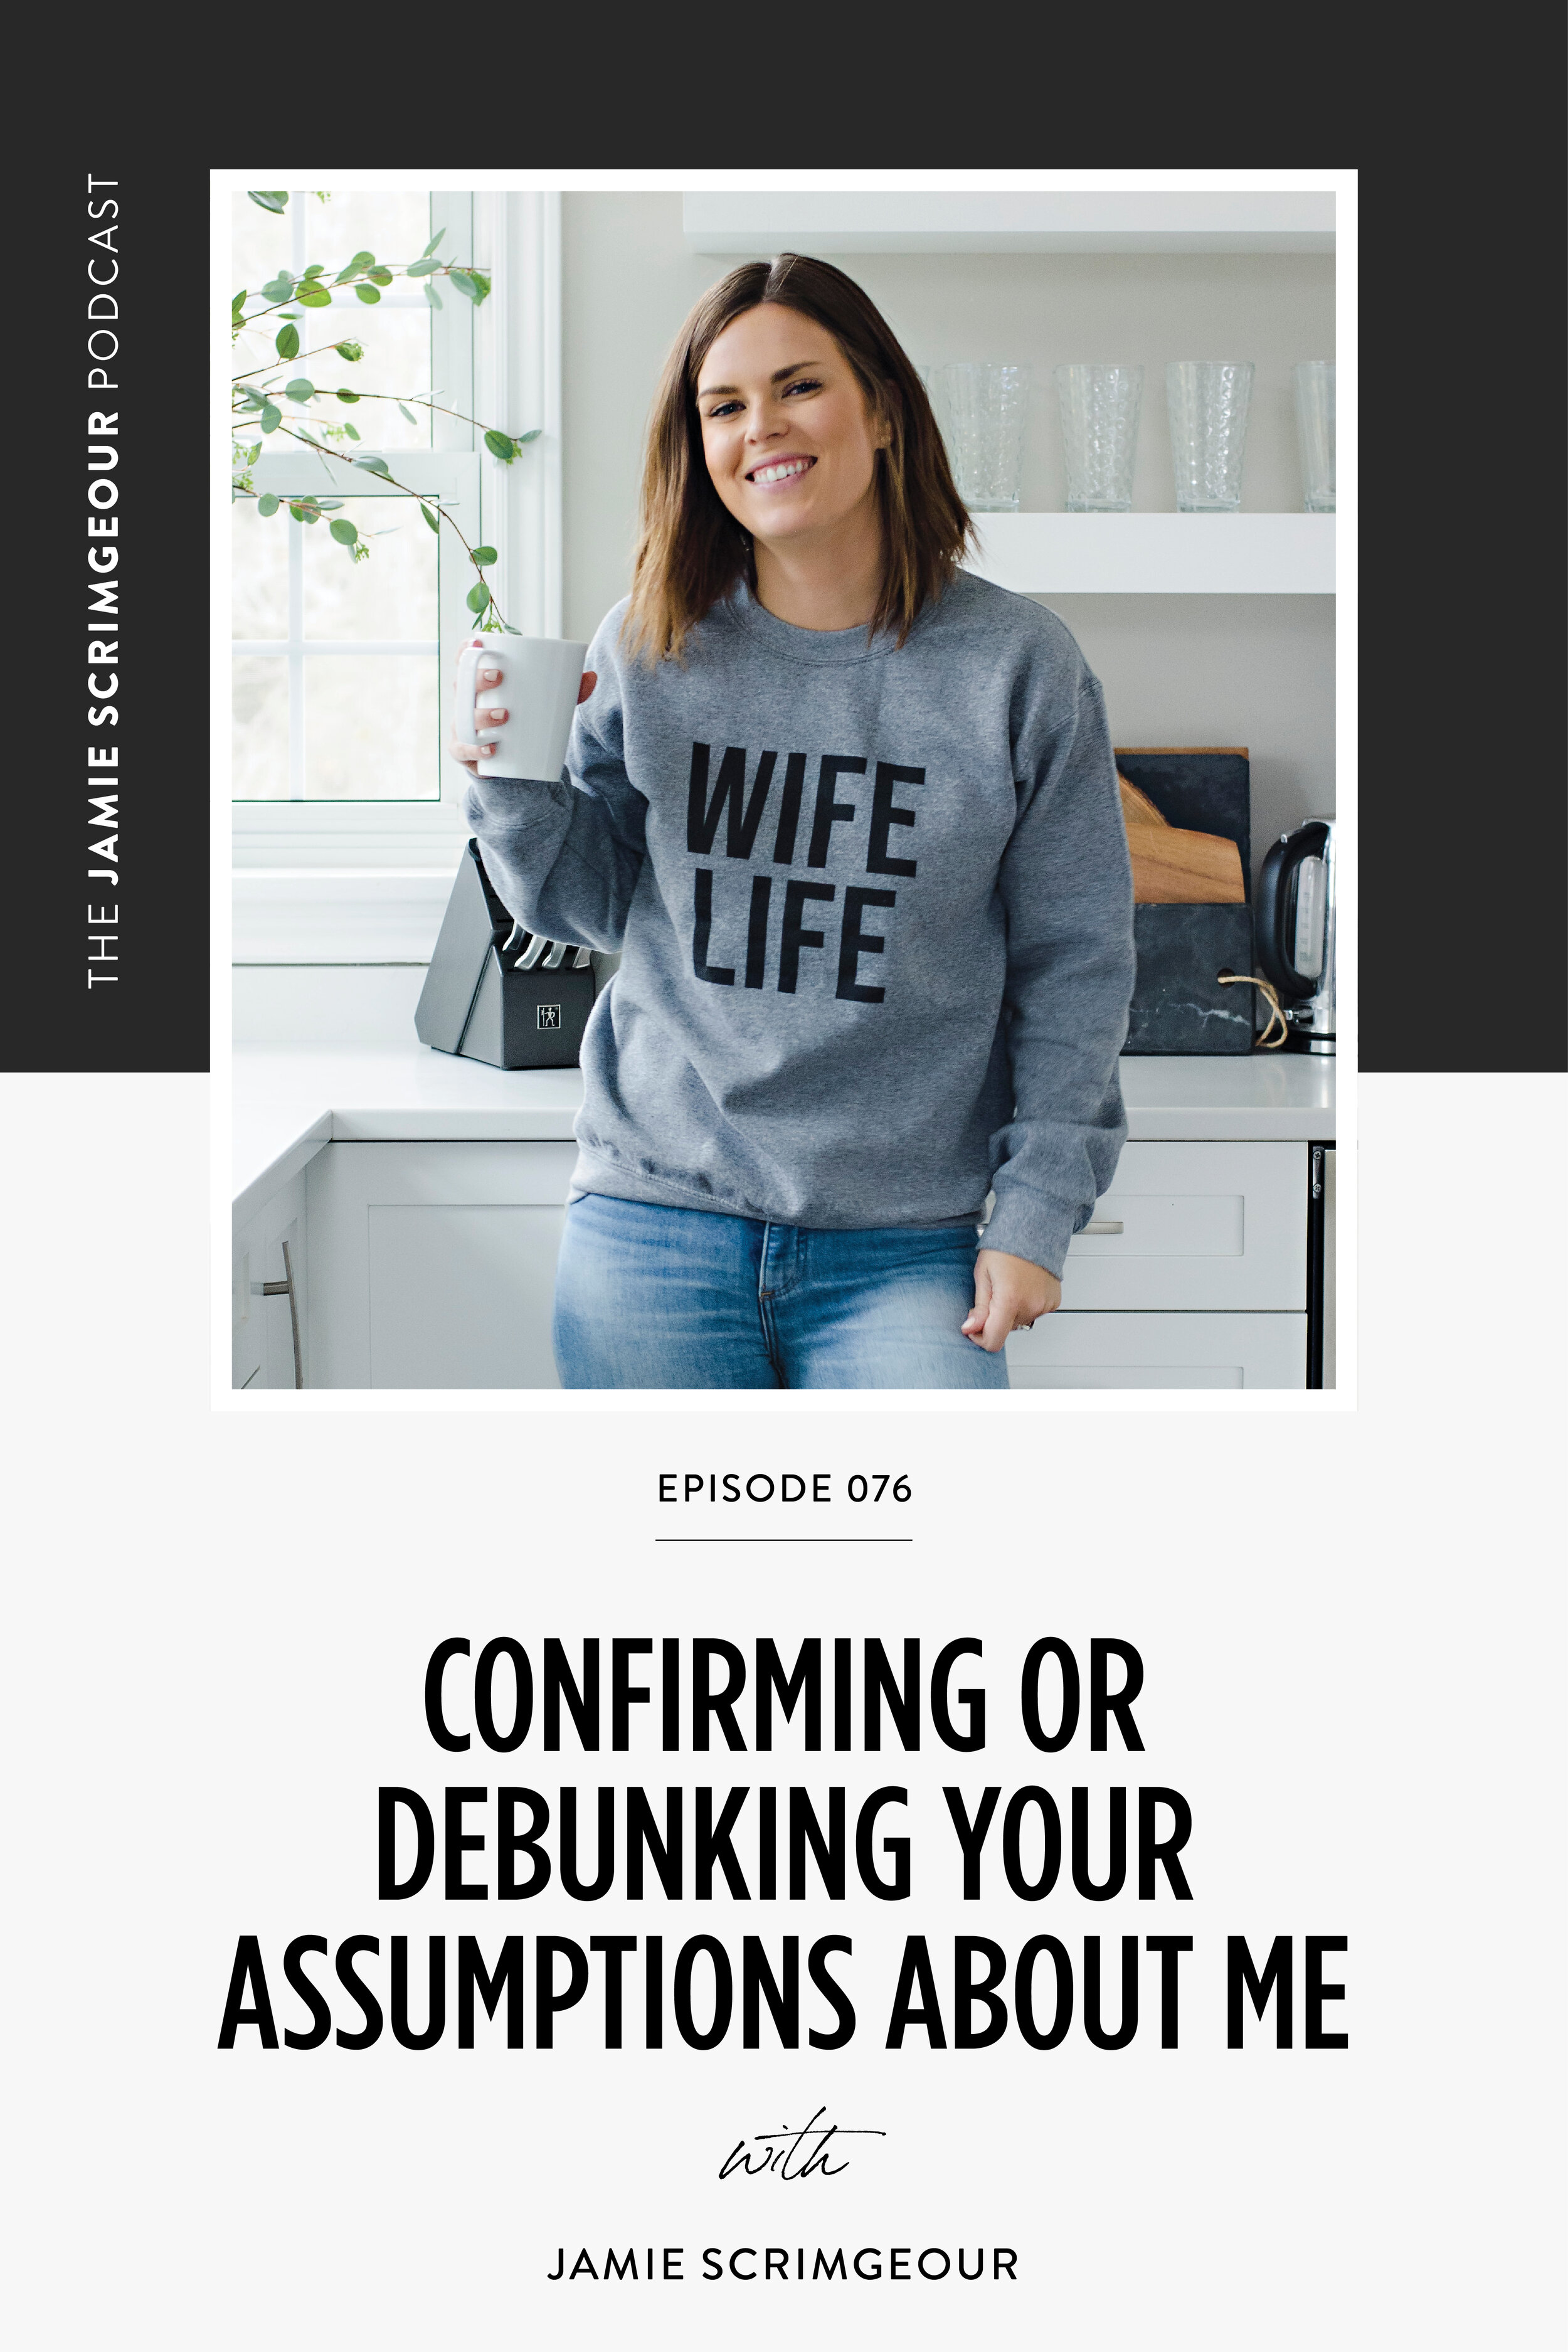 The Jamie Scrimgeour Podcast Episode 076 - Confirming Or Debunking Your Assumptions About Me